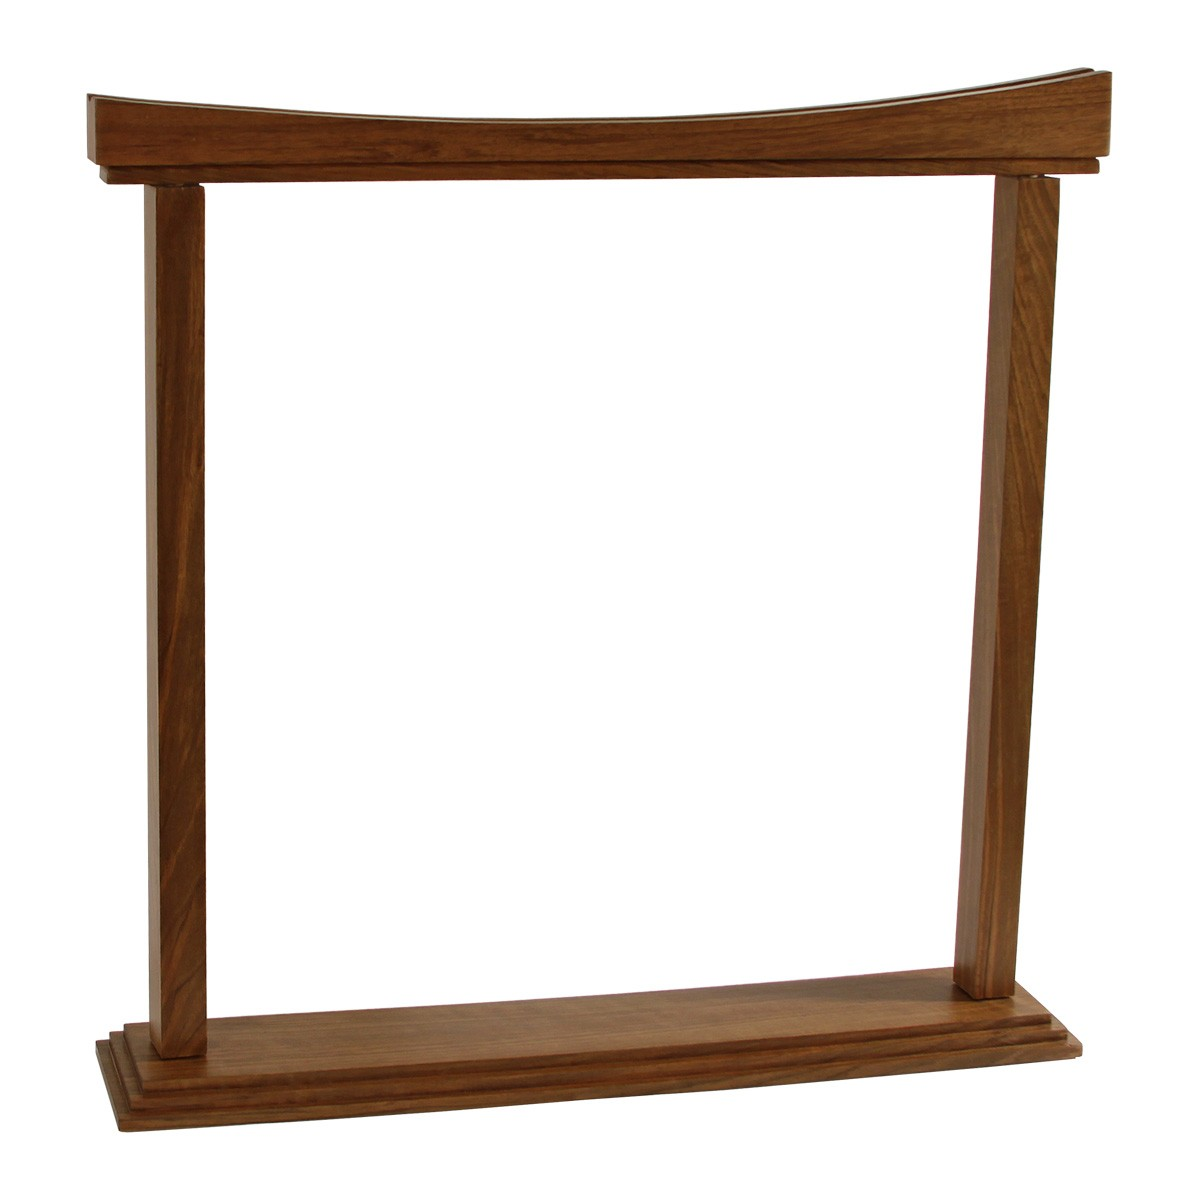 DOBANI Curved Gong Stand 18-Inch - Walnut